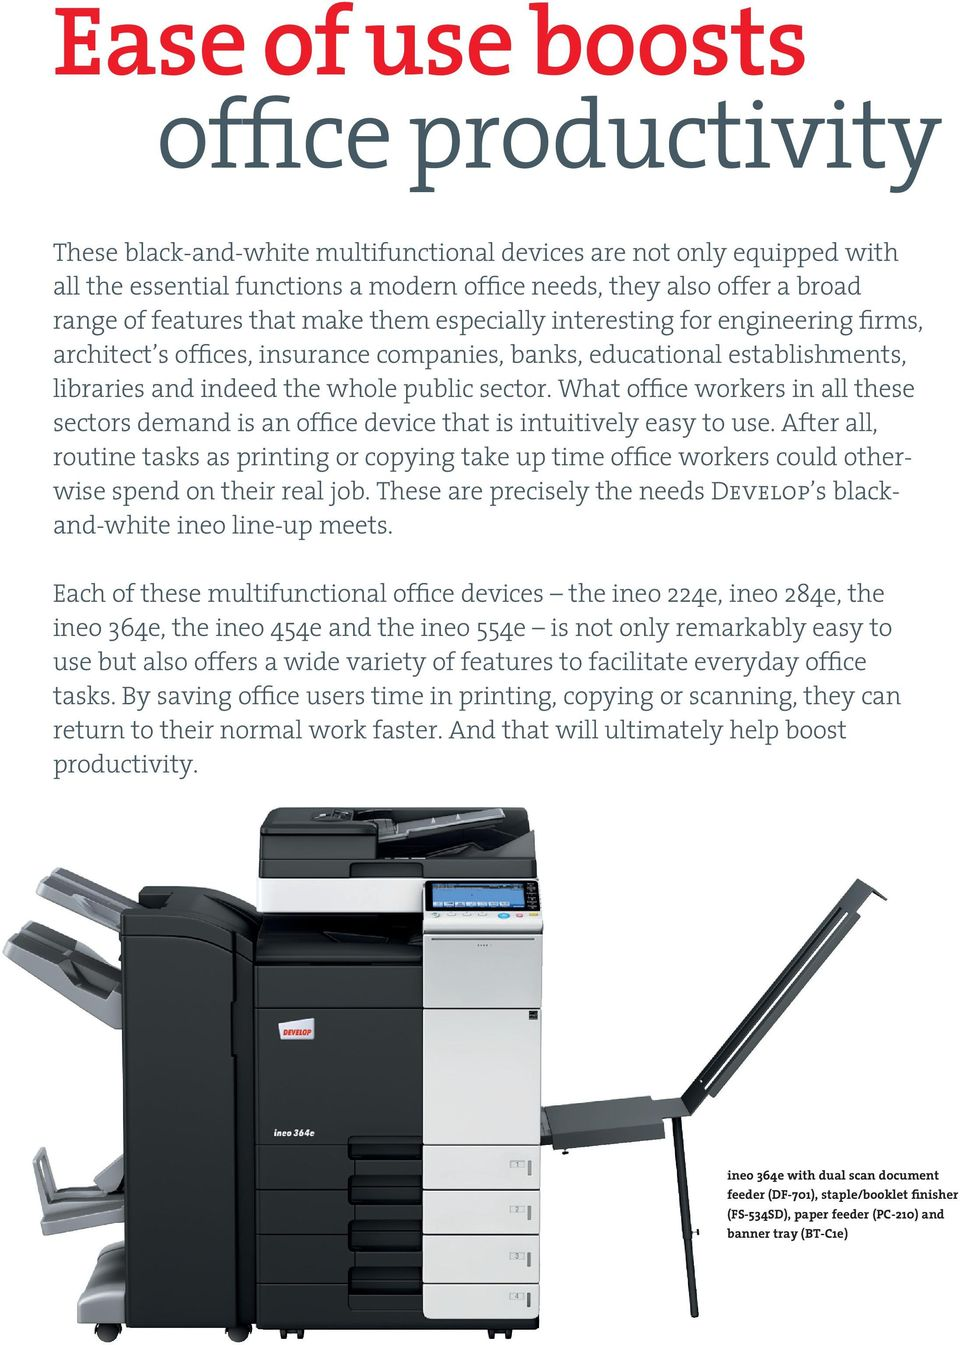 What office workers in all these sectors demand is an office device that is intuitively easy to use.